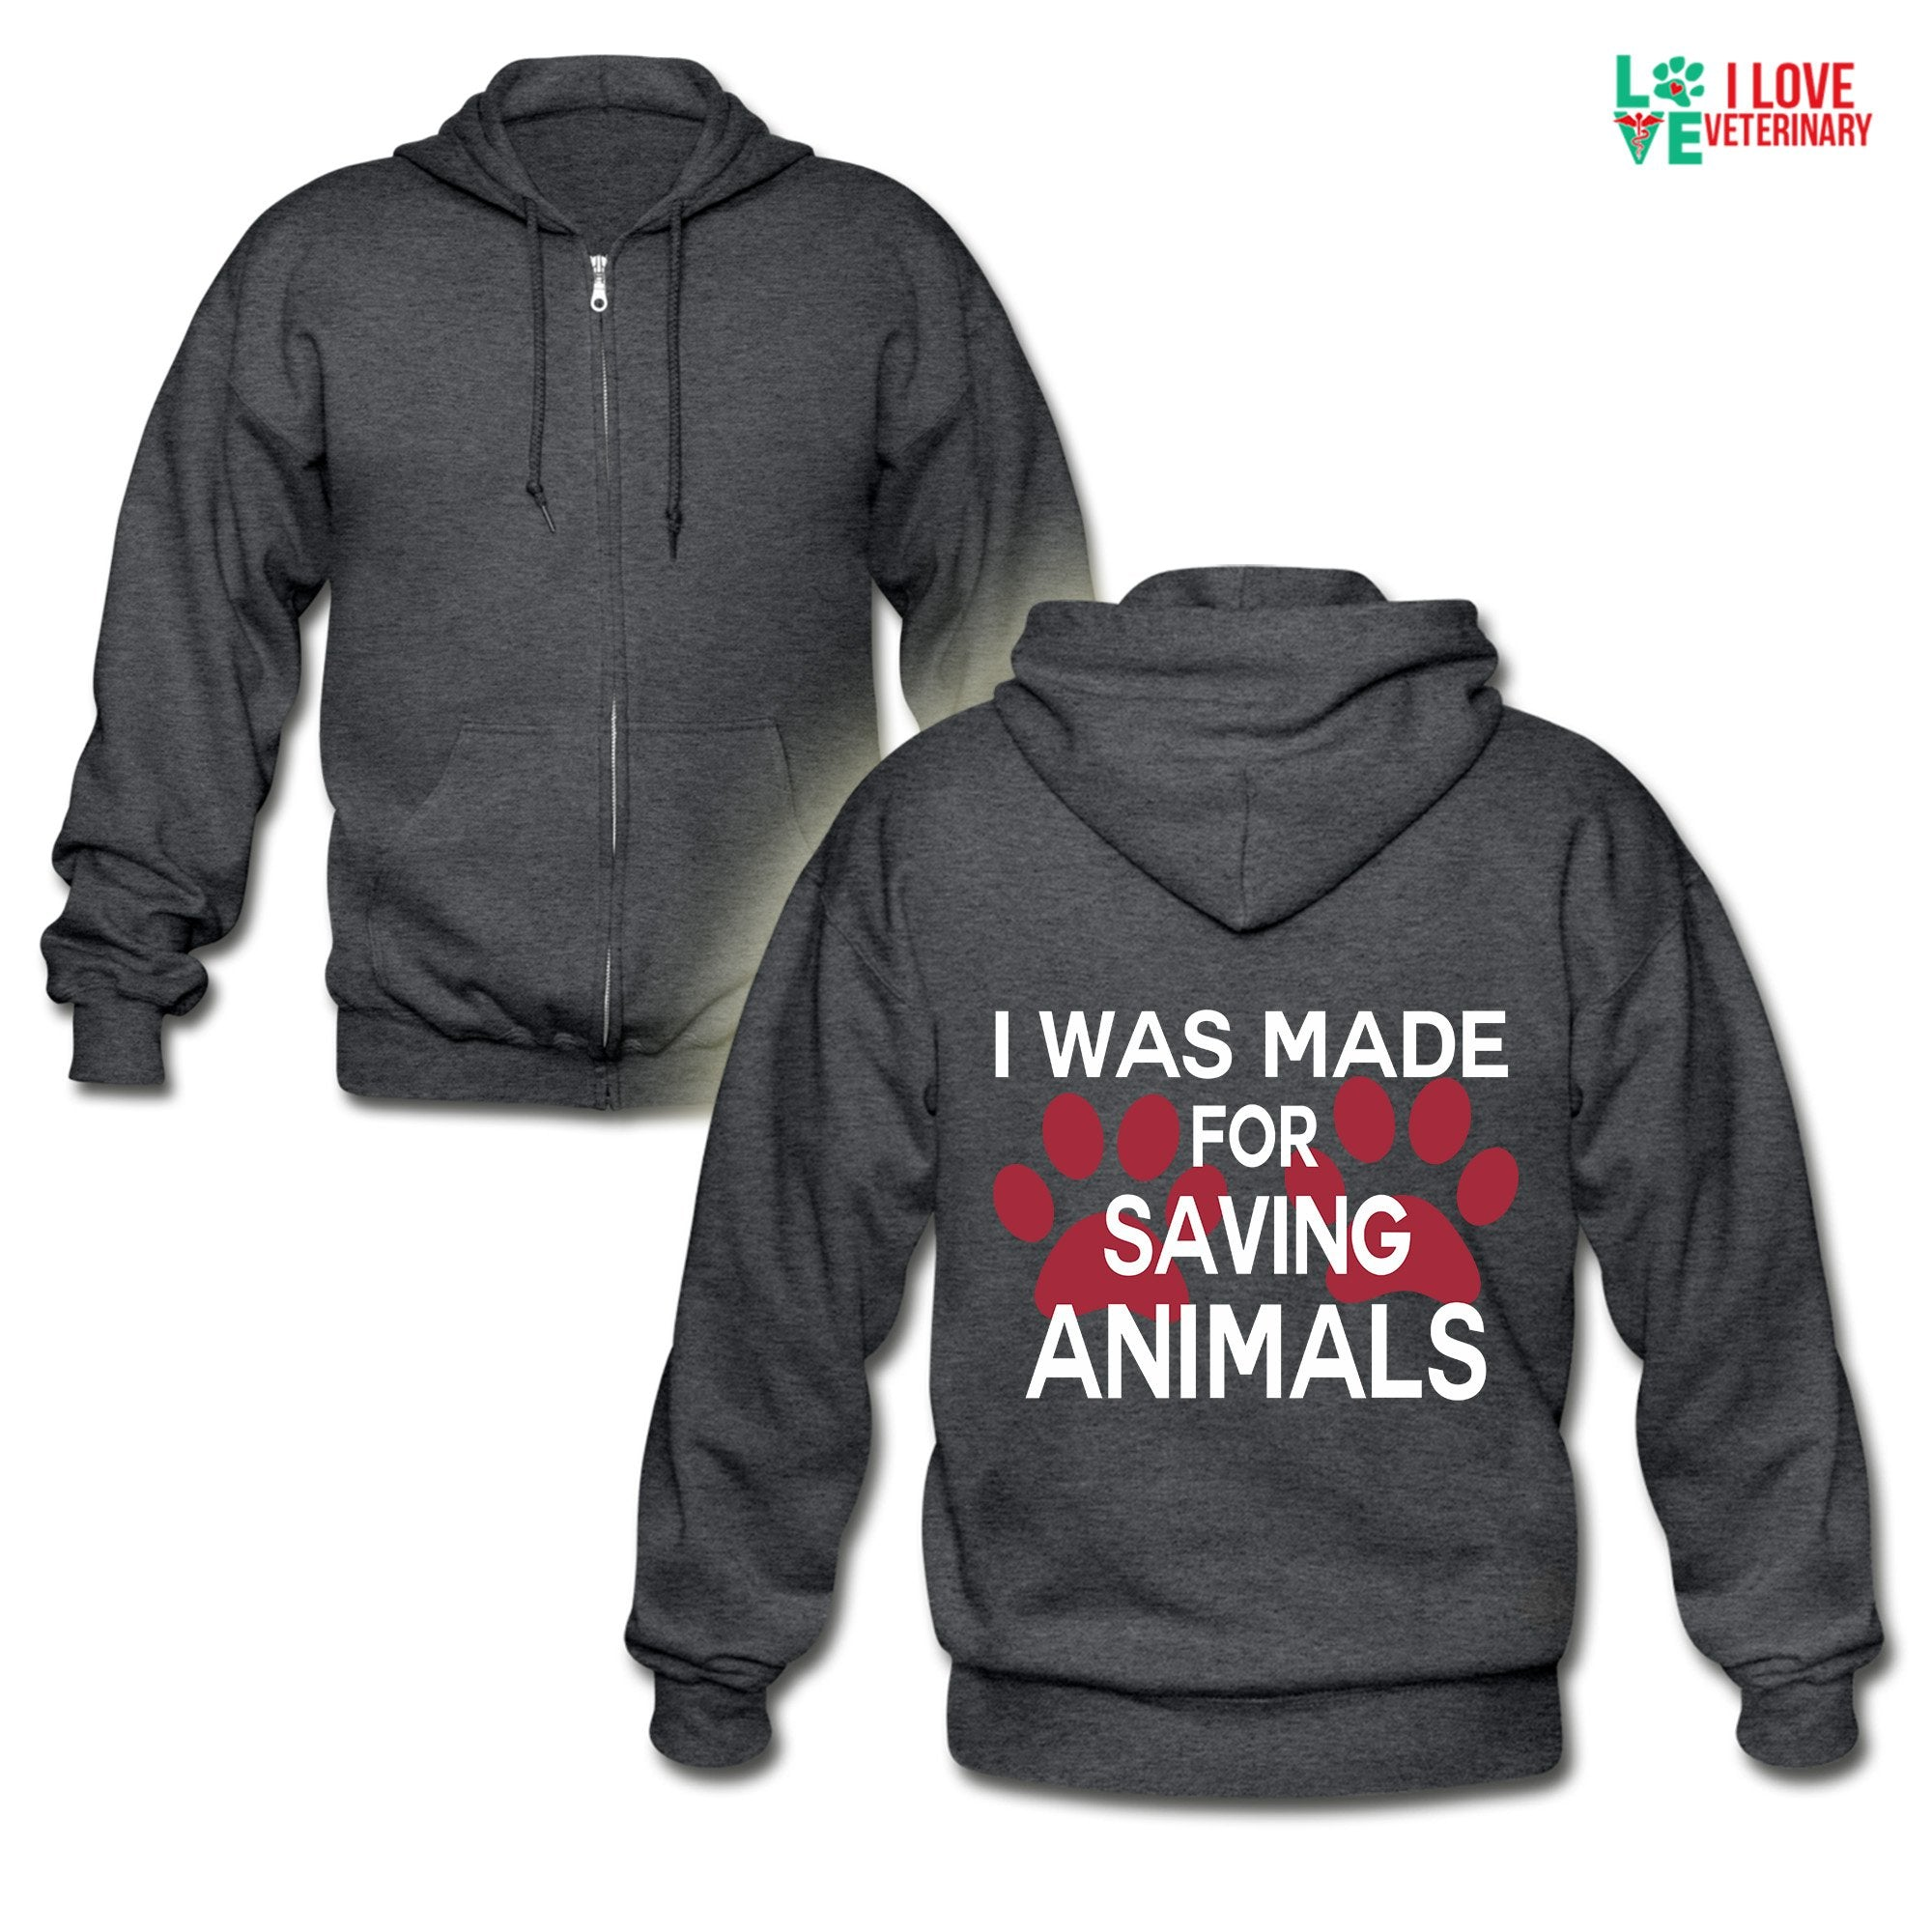 Veterinary - I was made for saving animals Unisex Zip Hoodie-Gildan Heavy Blend Adult Zip Hoodie-I love Veterinary